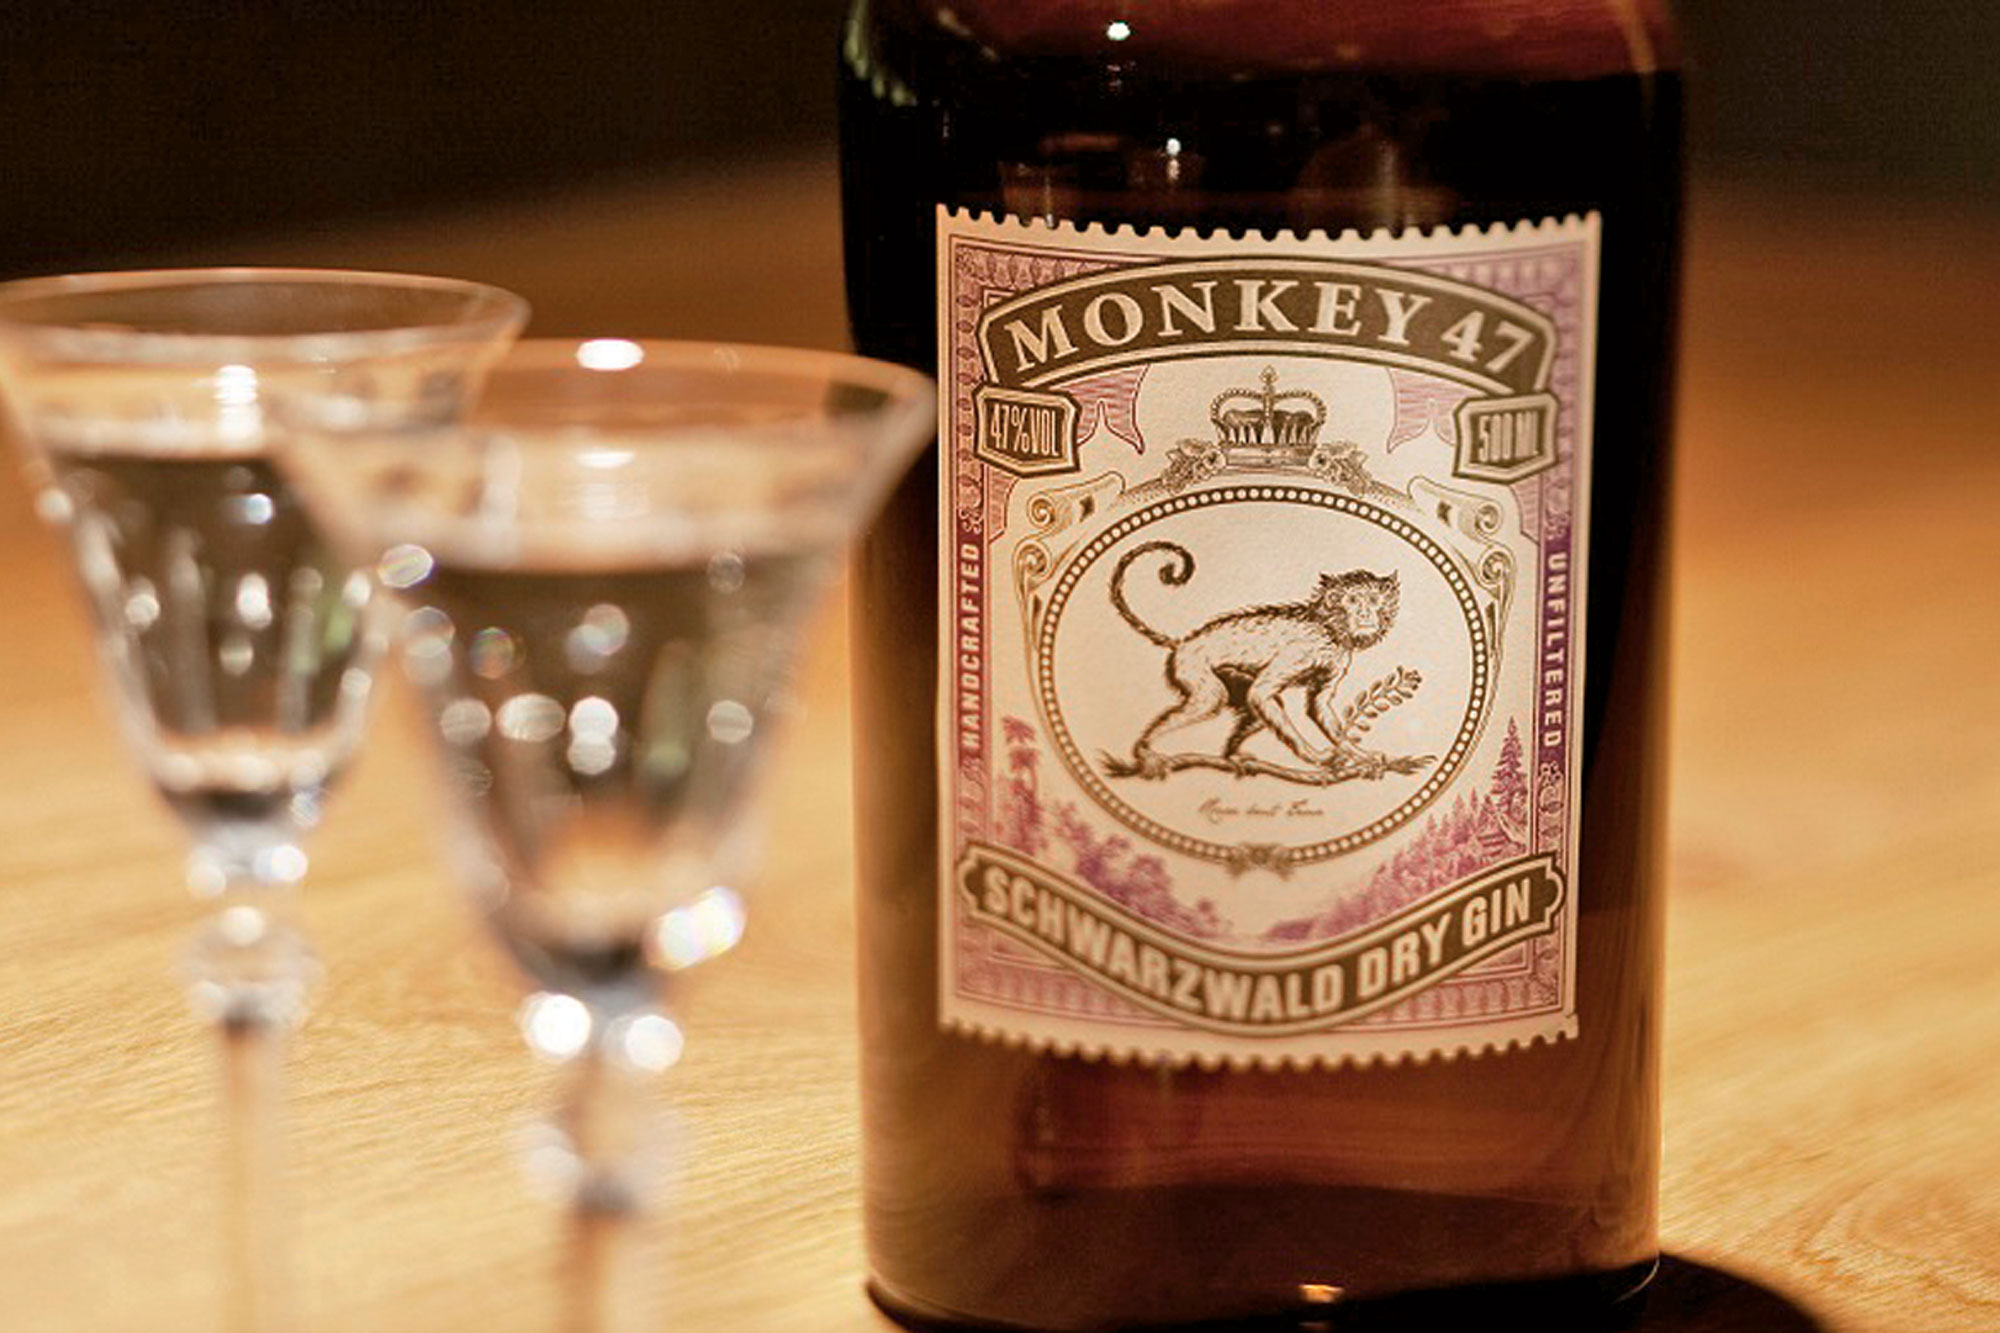 A bottle Monkey 47 Schwarzwald Dry Gin with two glasses